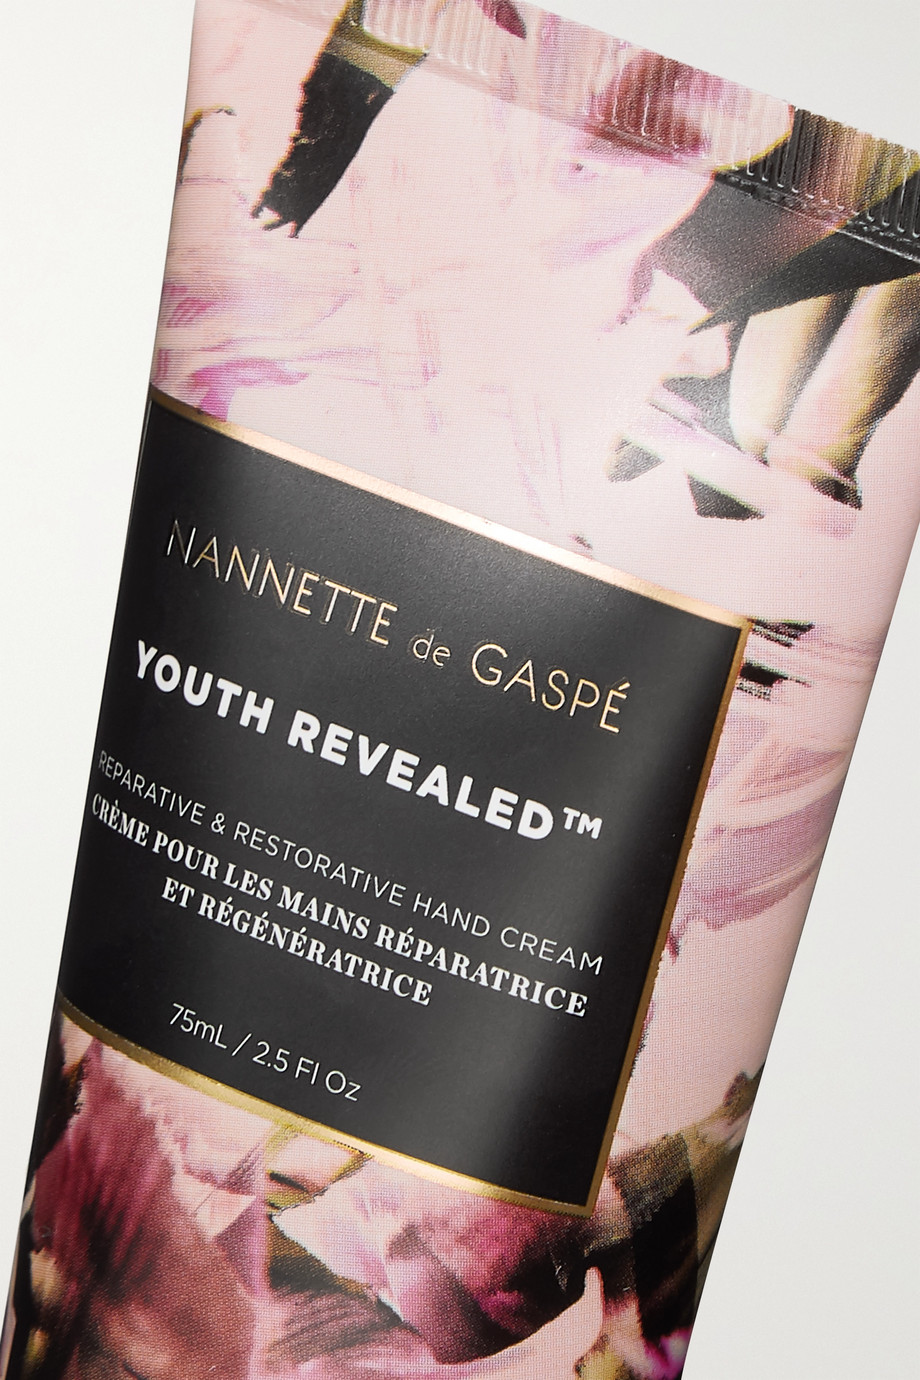 NANNETTE DE GASPÉ Youth Revealed Reparative & Restorative Hand Cream, 75ml